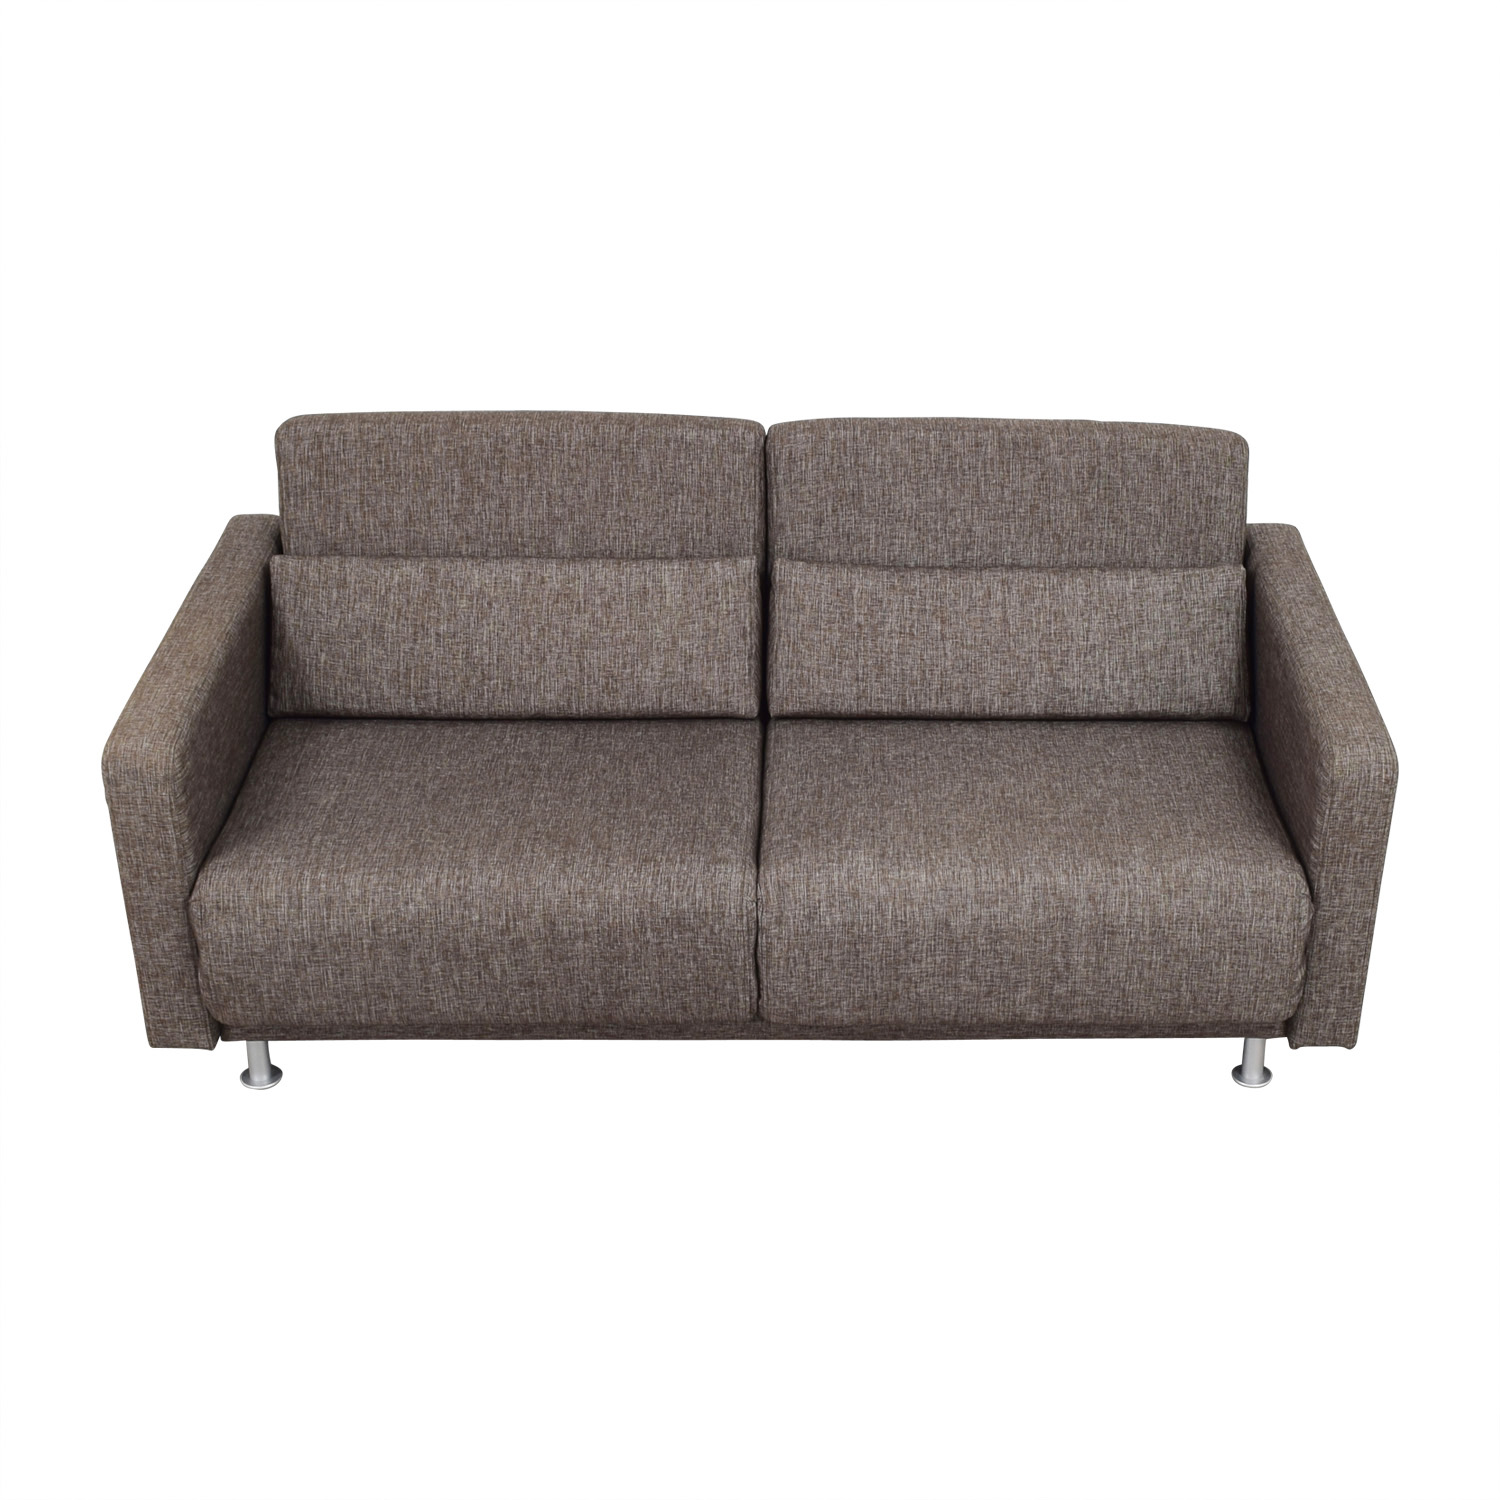 60 Off Bo Concept Bo Concept Melo Brown Reclining Sleeper Sofa Sofas